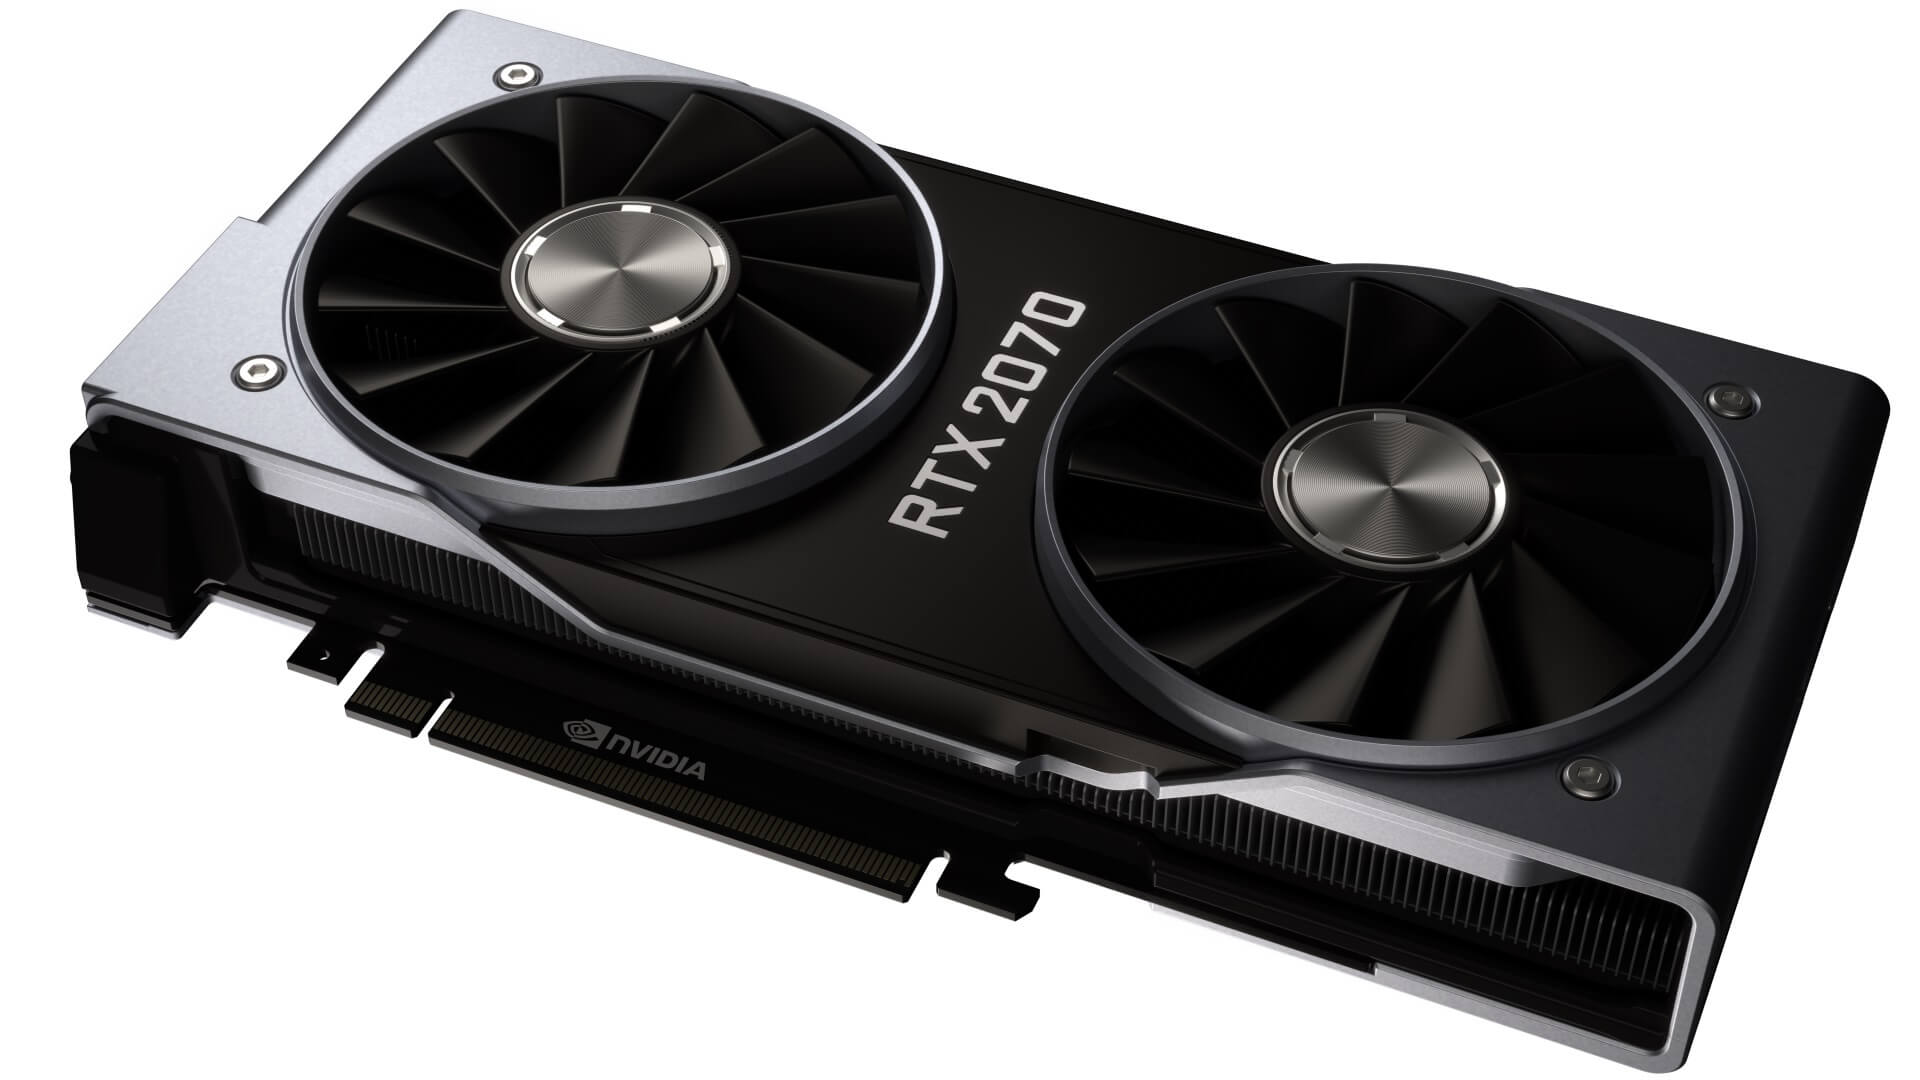 Nvidia is ready to ship the RTX 2070 on October 17